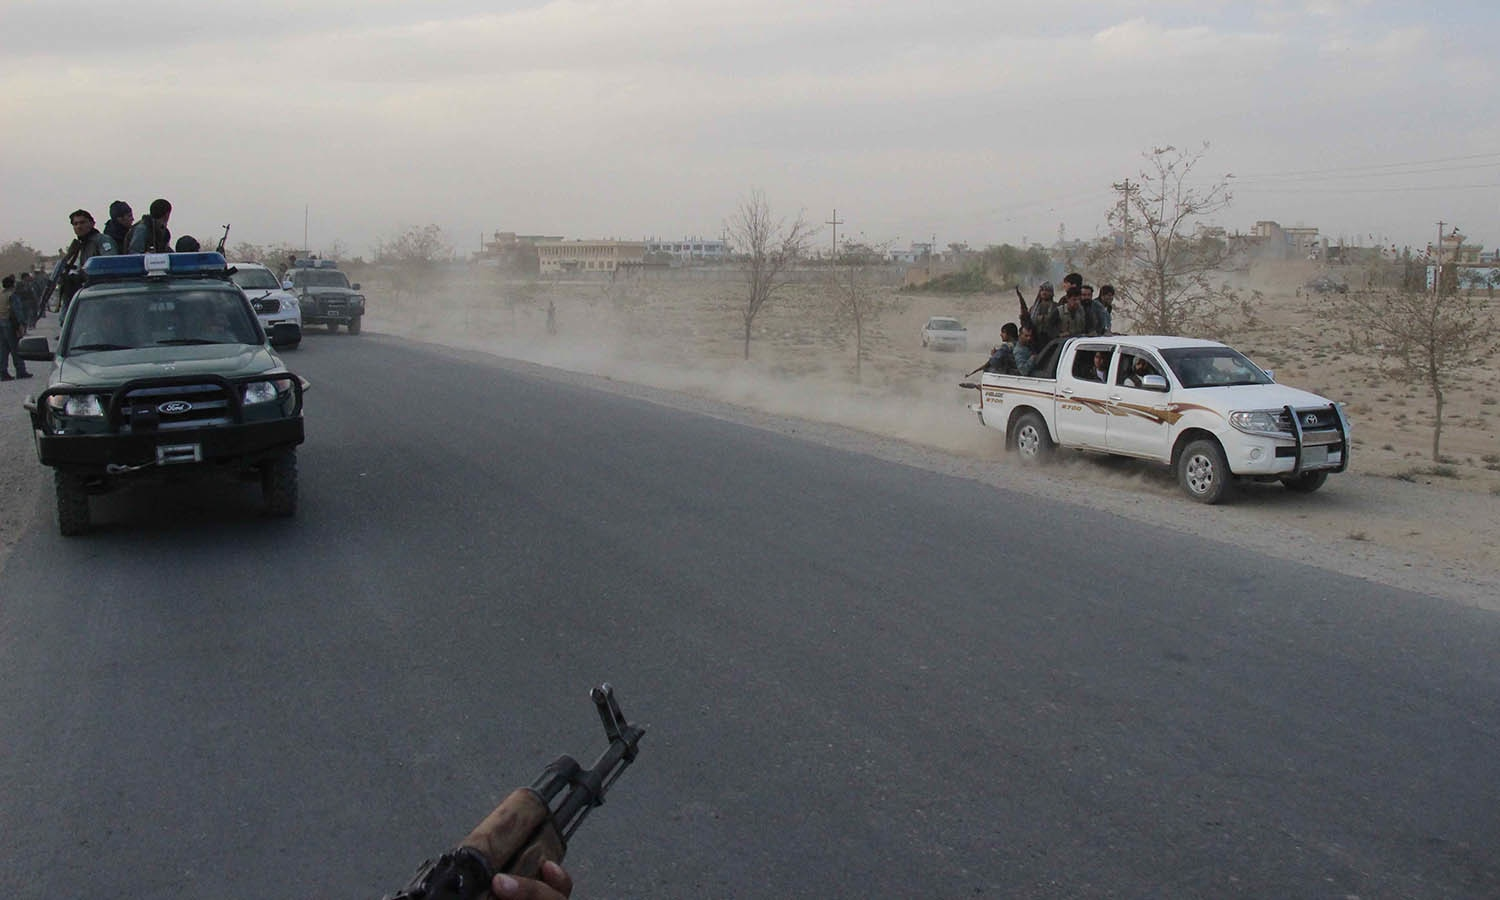 Afghan security personnel driving on a road as heavy fighting erupted near the airport on the outskirts of Kunduz. — AFP